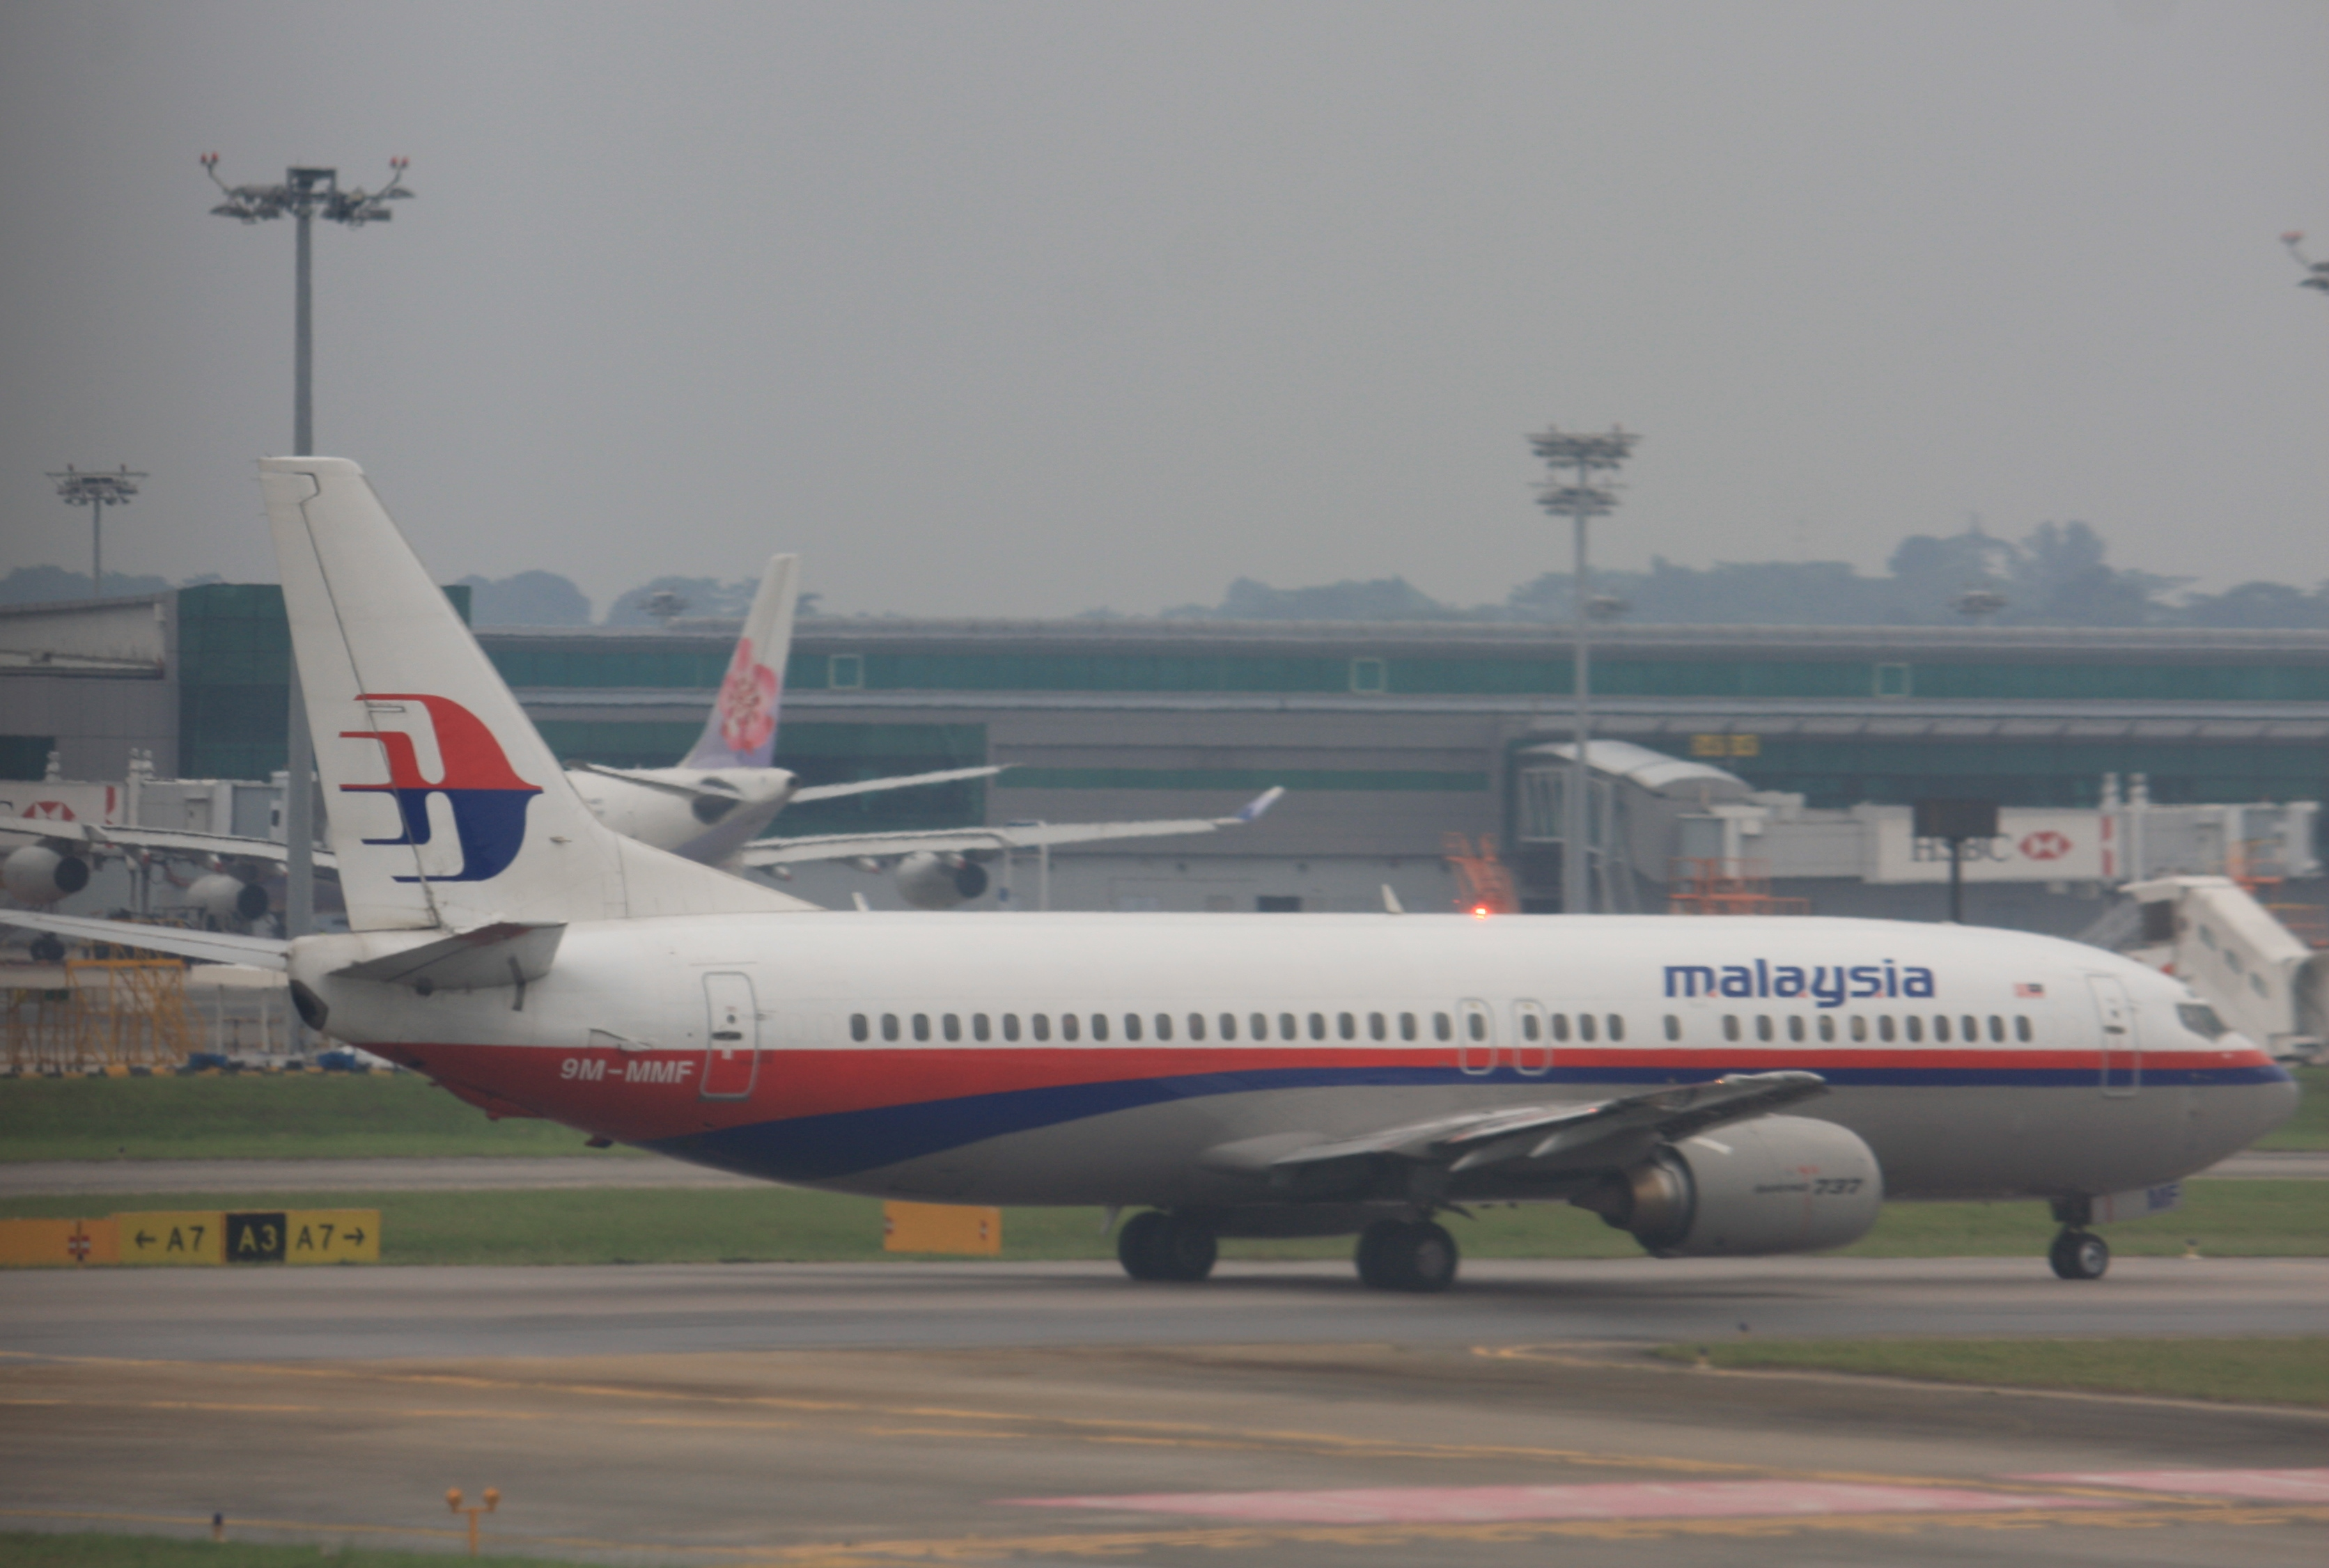 File:9M-MMF Boeing 737-4H6 (cn 26466-2372) Malaysia